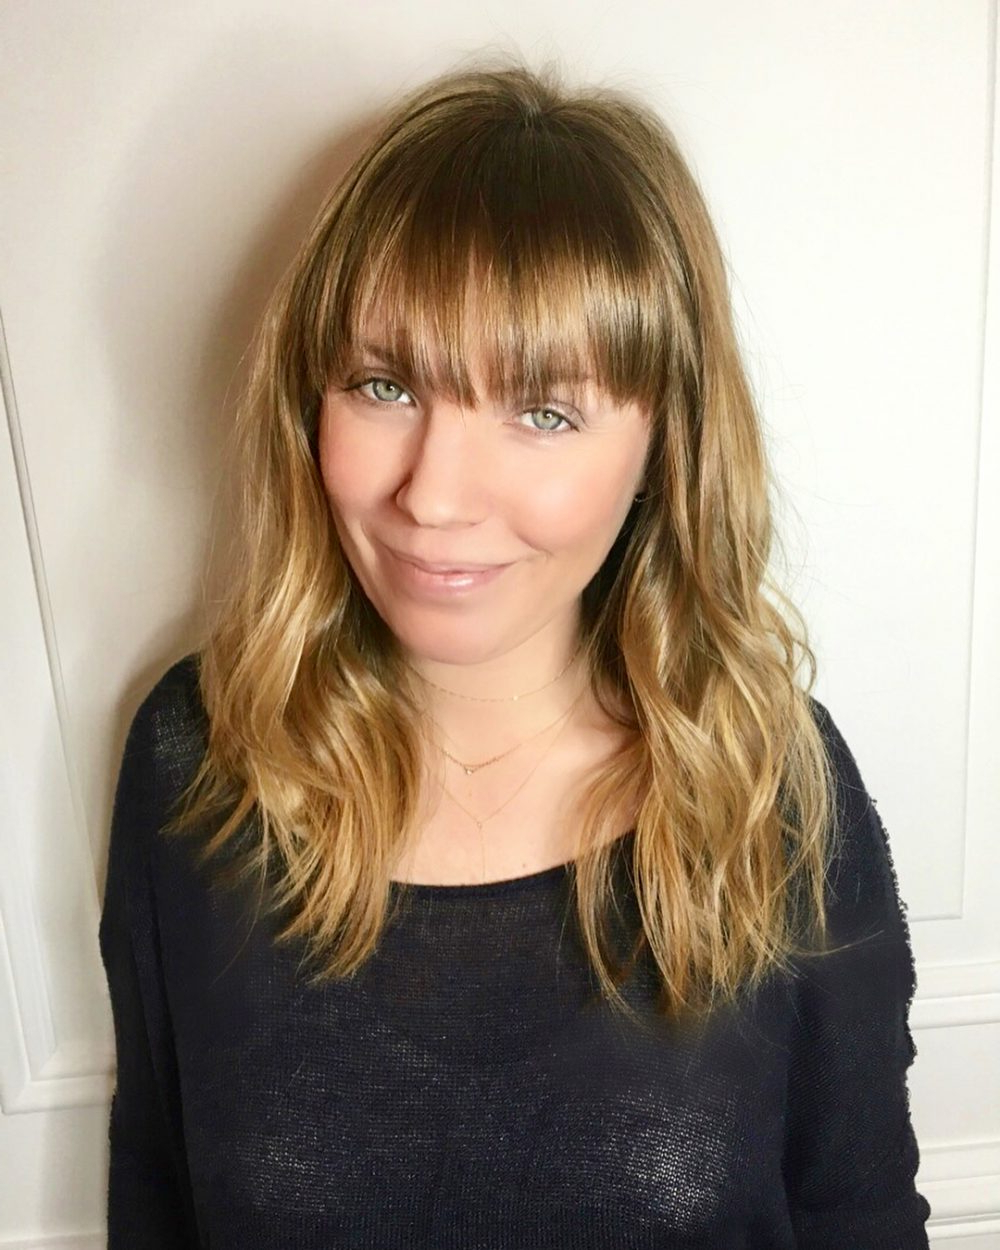 53 Popular Medium Length Hairstyles With Bangs In 2019 Intended For 2017 Medium Hairstyles With A Fringe (View 3 of 20)